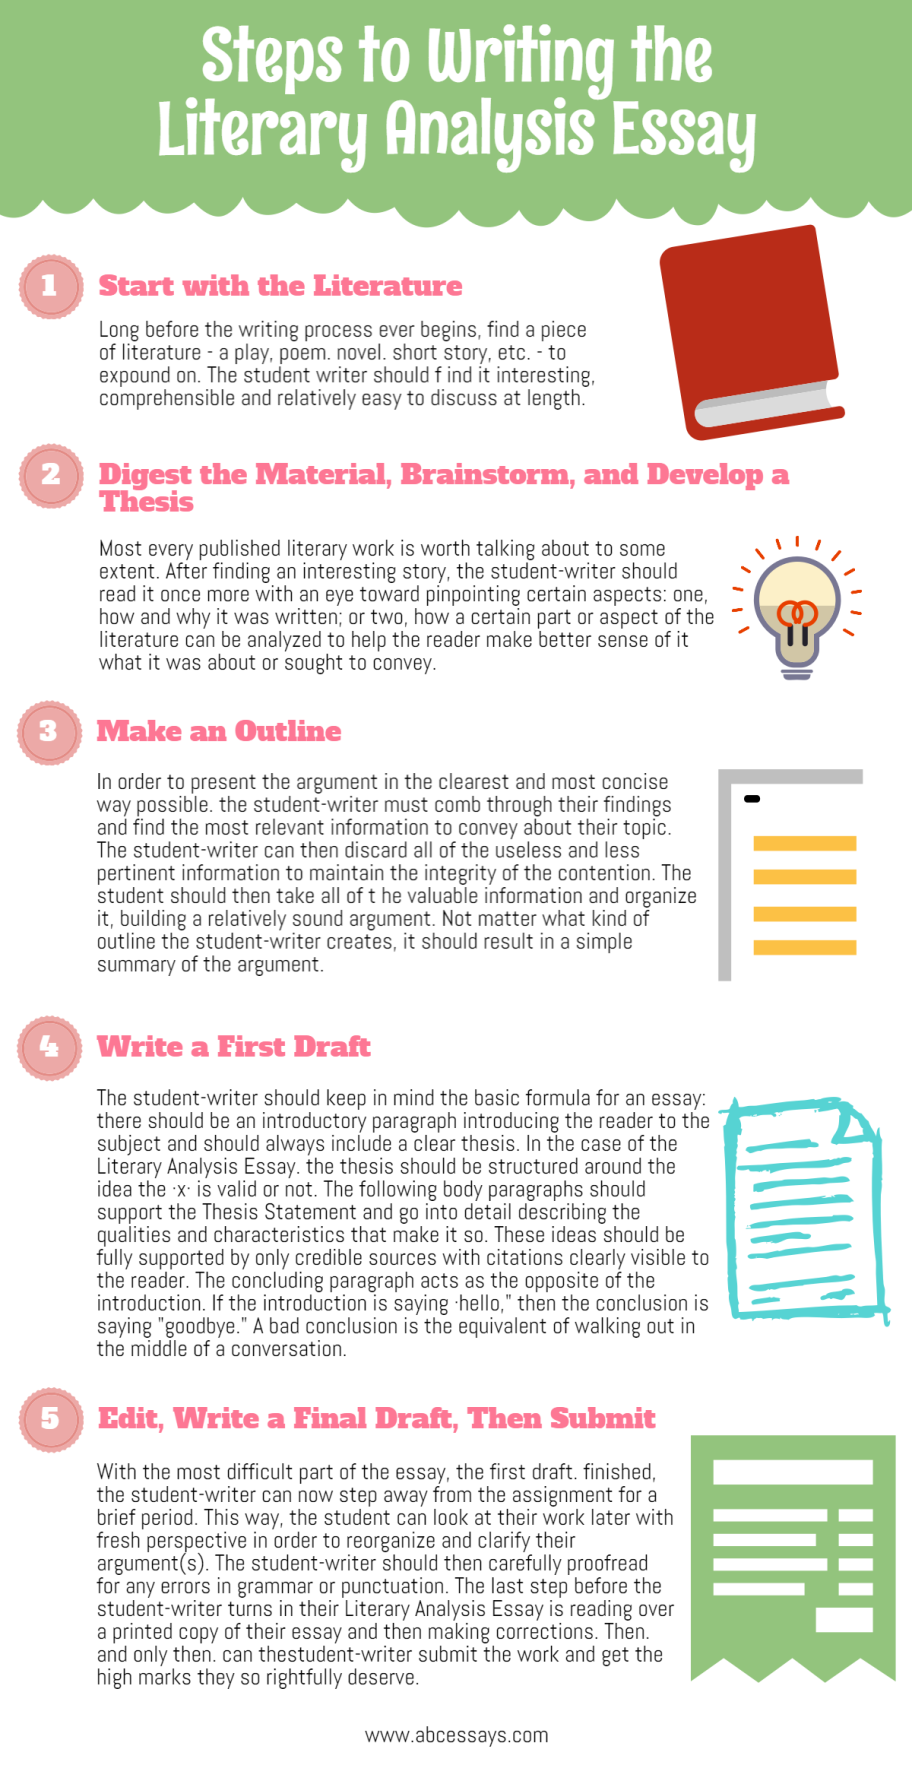 seven steps to writing an essay The ultimate guide to writing perfect research papers, essays, dissertations or  even a  step 7 revise your outline and draft read your paper for  any.